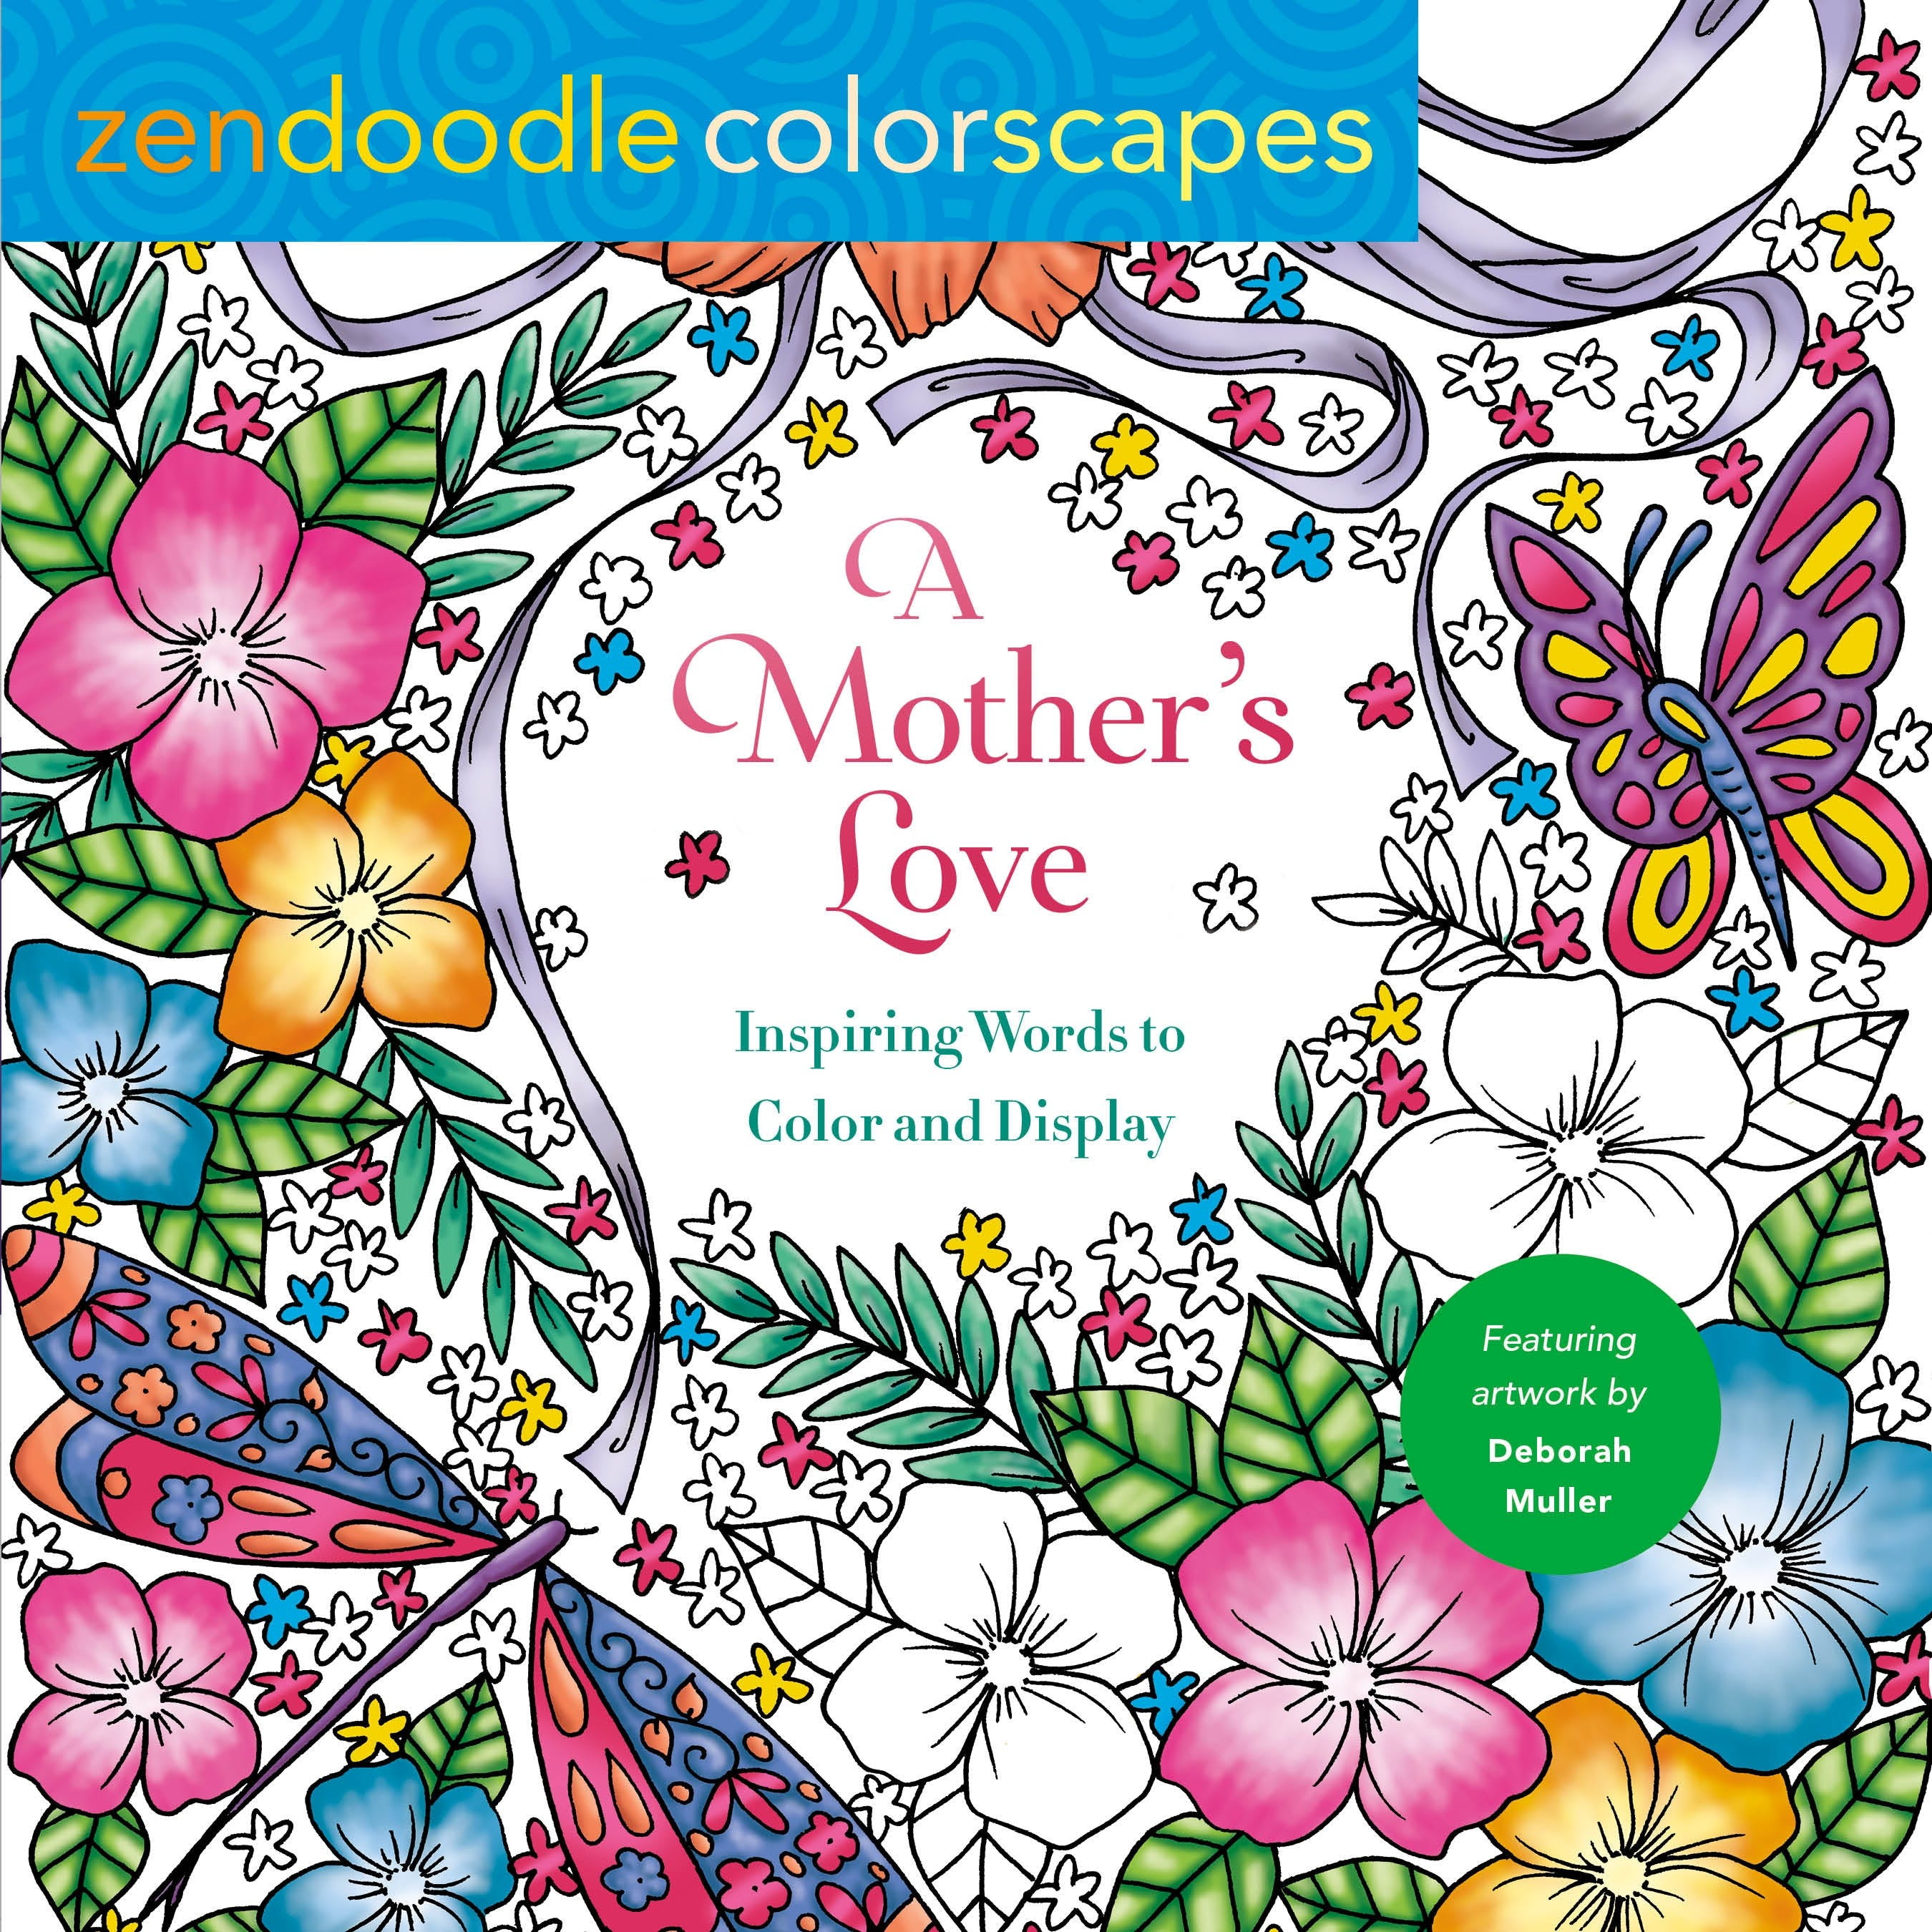 Image of Zendoodle Colorscapes: A Mother's Love